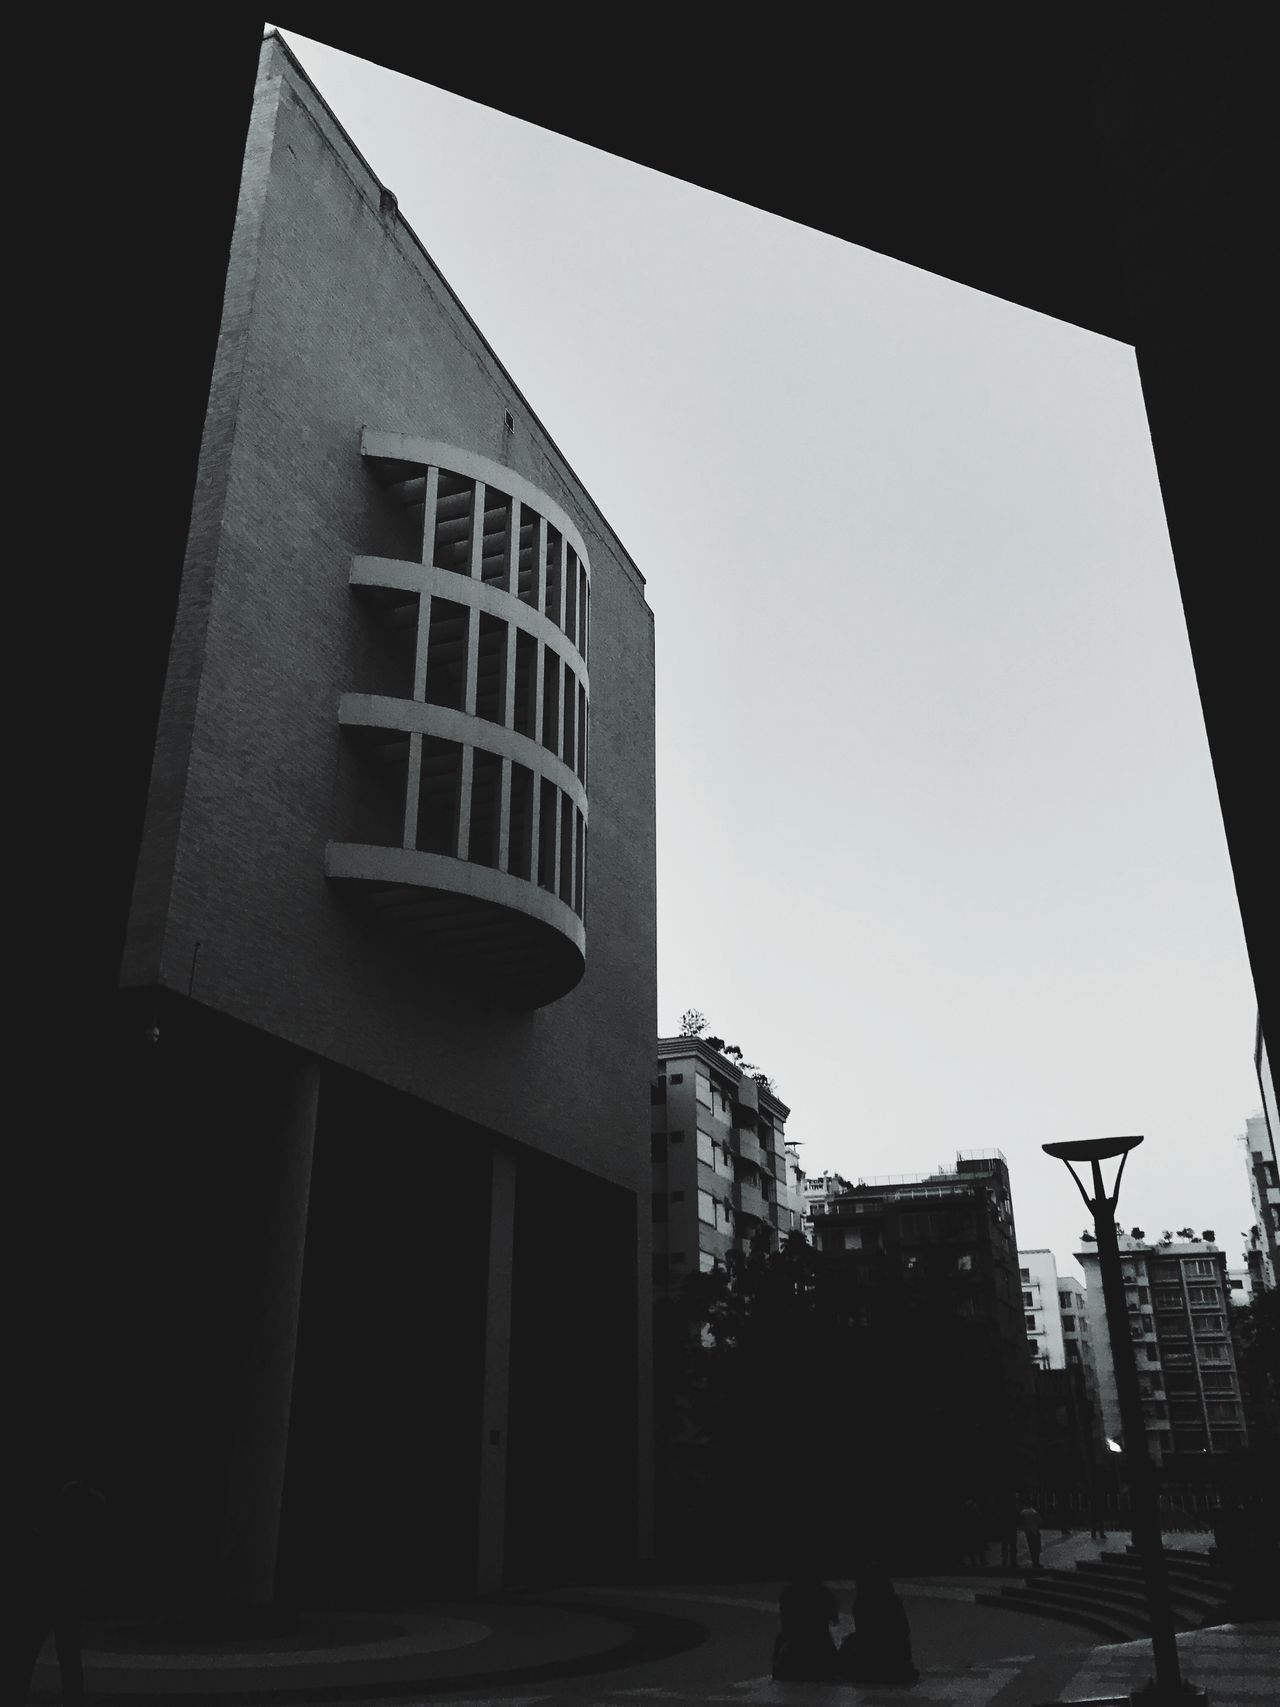 Built Structure Architecture Building Exterior Low Angle View Day Outdoors City Real People Clear Sky Sky Northsouthuniversity Nsu Dhaka Bangladesh 🇧🇩 Shotoniphone7plus Photooftheday Mobilephotography University The Great Outdoors - 2017 EyeEm Awards The Architect - 2017 EyeEm Awards